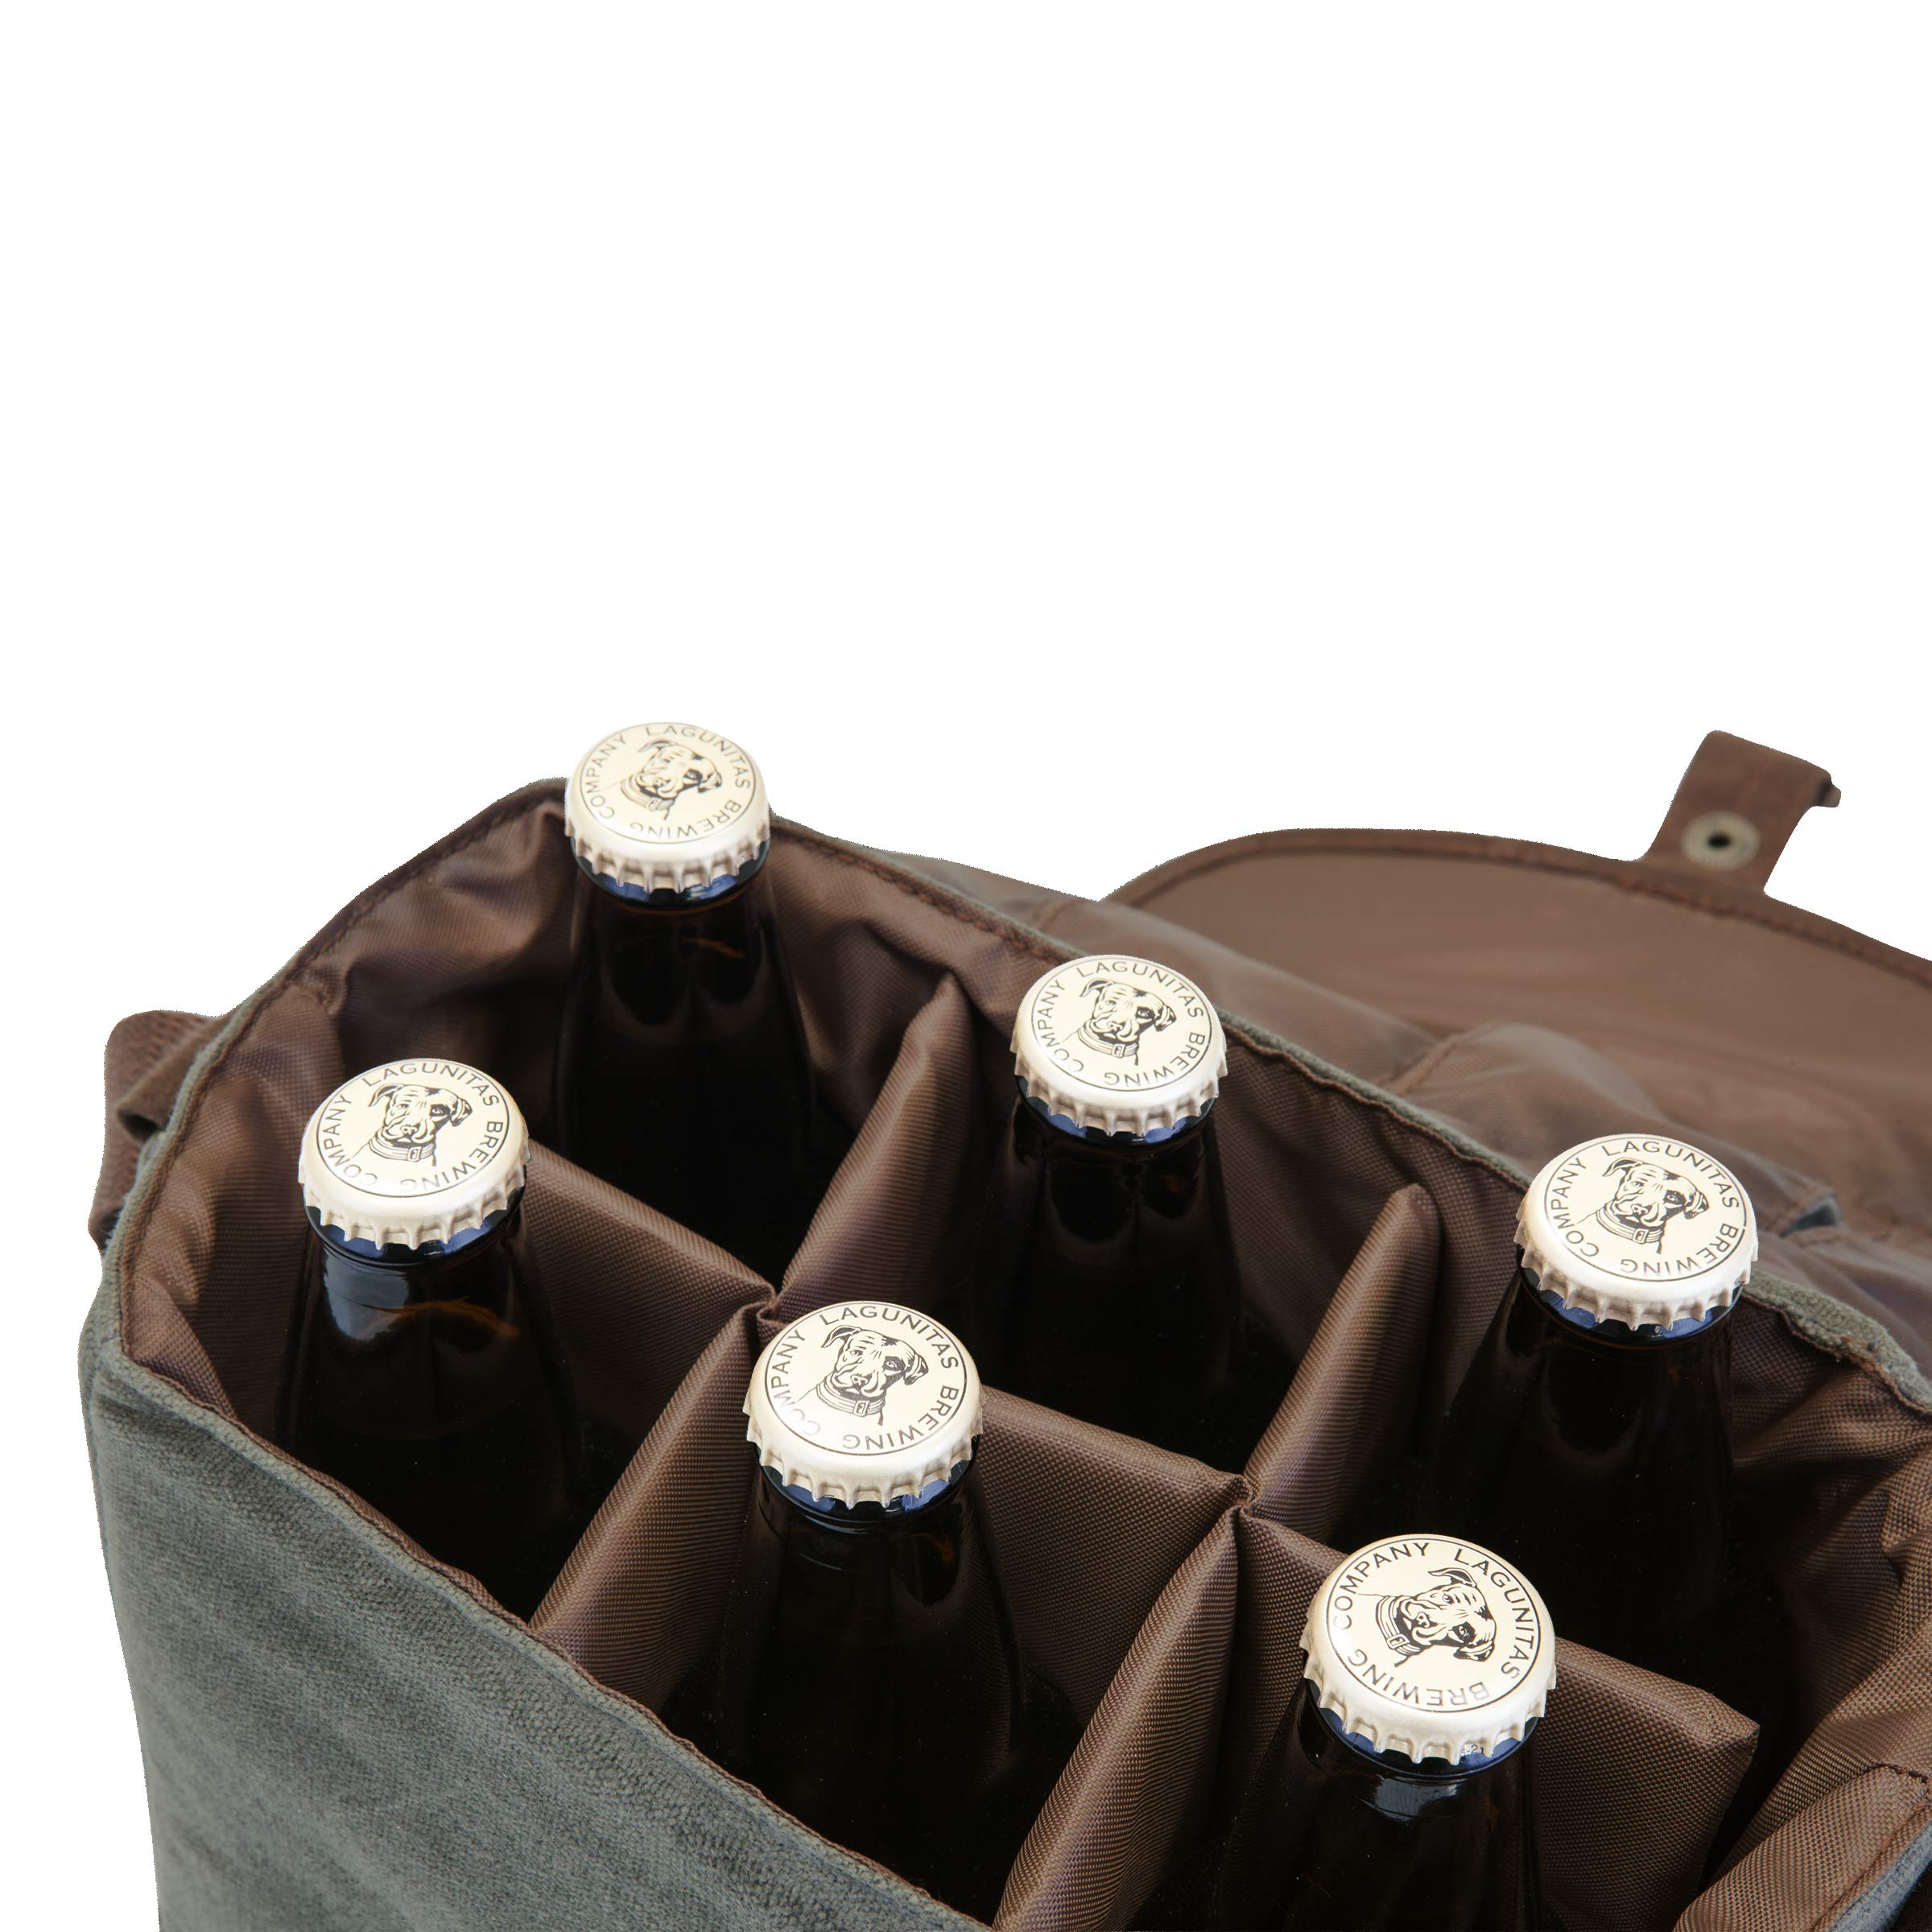 LEGACY - a Picnic Time Brand 6-Bottle Beer Caddy with Integrated Bottle Opener, Khaki Green/Brown by LEGACY - a Picnic Time Brand (Image #5)